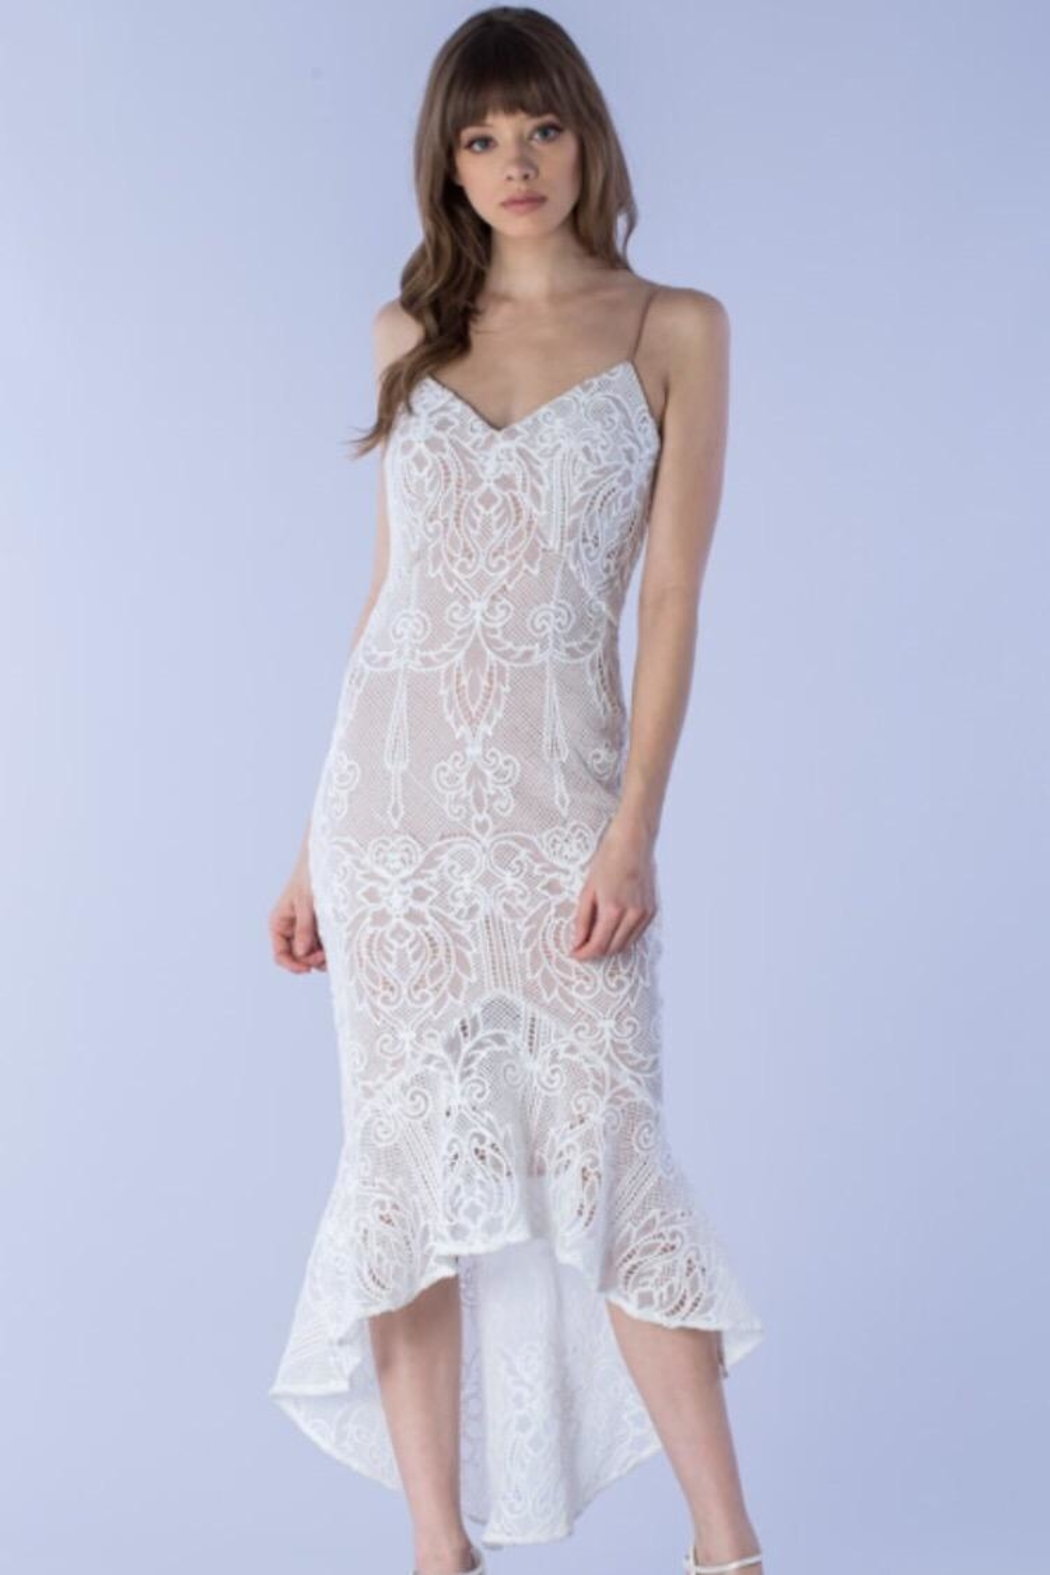 Do & Be Bell-Bottom Lace Dress - Main Image